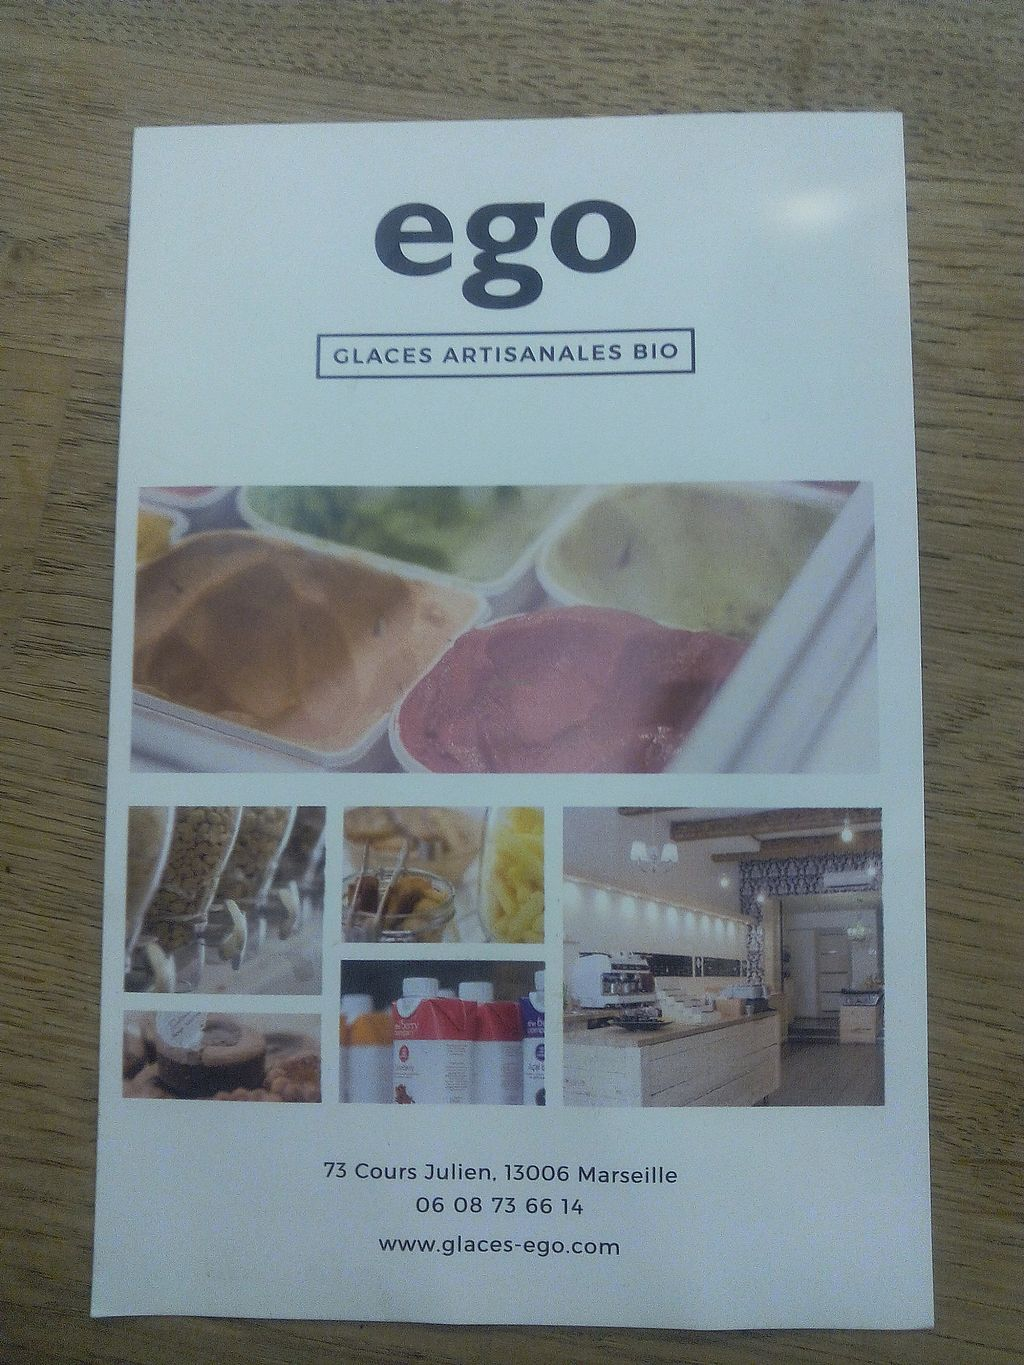 """Photo of ego  by <a href=""""/members/profile/vwlewis"""">vwlewis</a> <br/>The menu Page 1 <br/> June 30, 2017  - <a href='/contact/abuse/image/94901/275234'>Report</a>"""